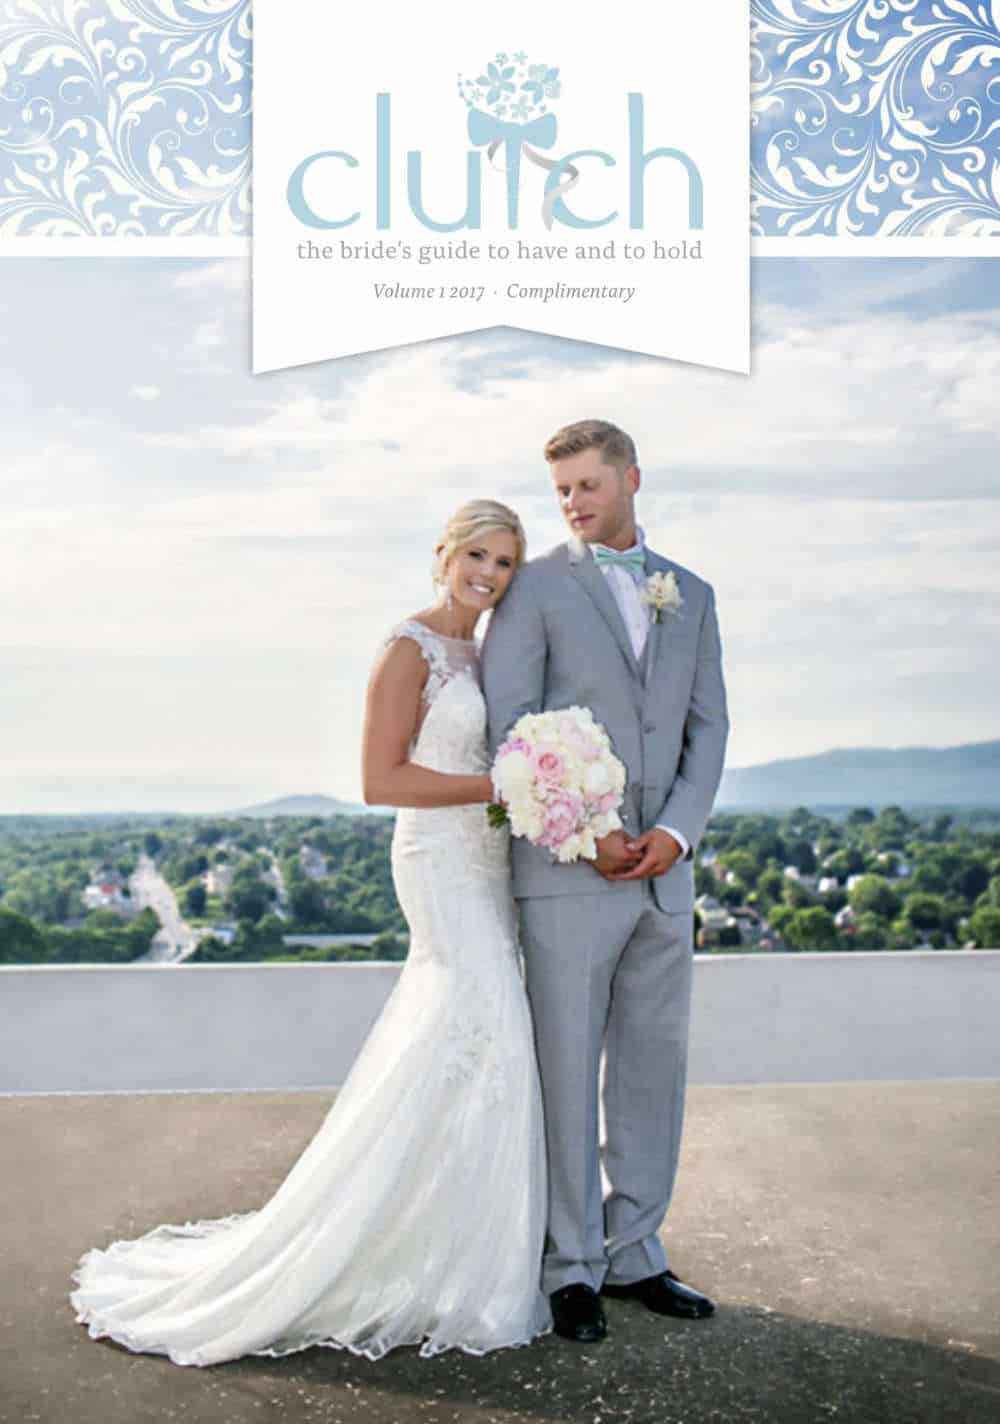 Phofo of the cover of The Cluth Wedding 2017 guide